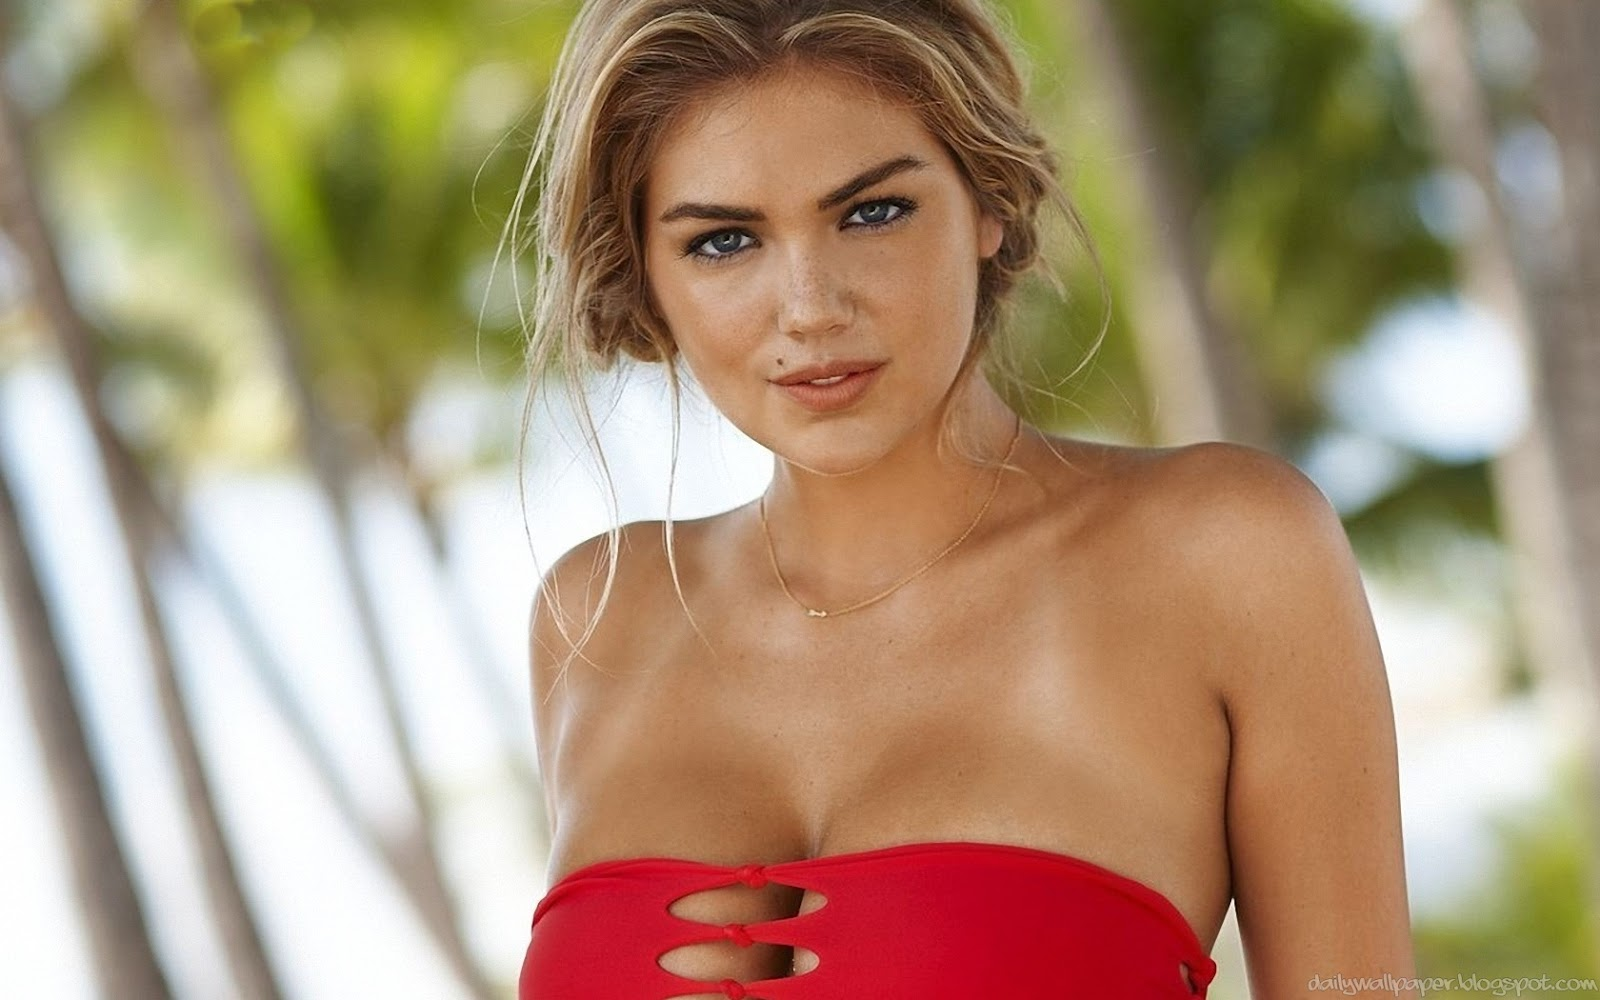 Hot Pictures of Kate Upton